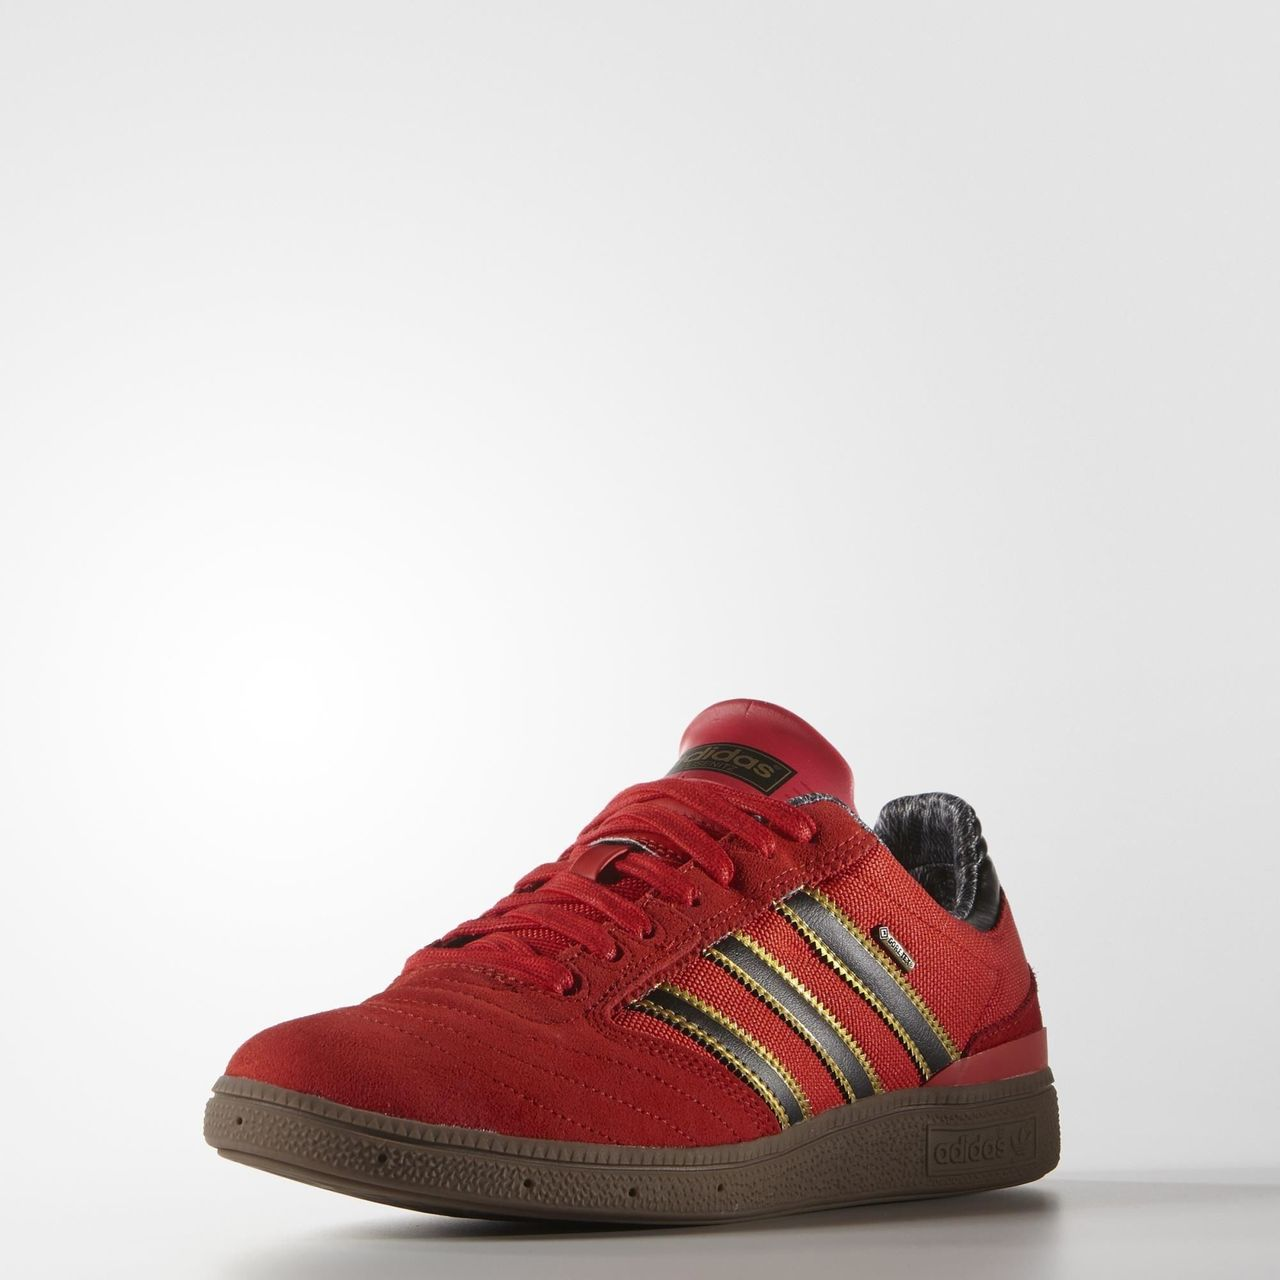 ... Click to enlarge image adidas-busenitz-gore-tex-collegiate-red- ...